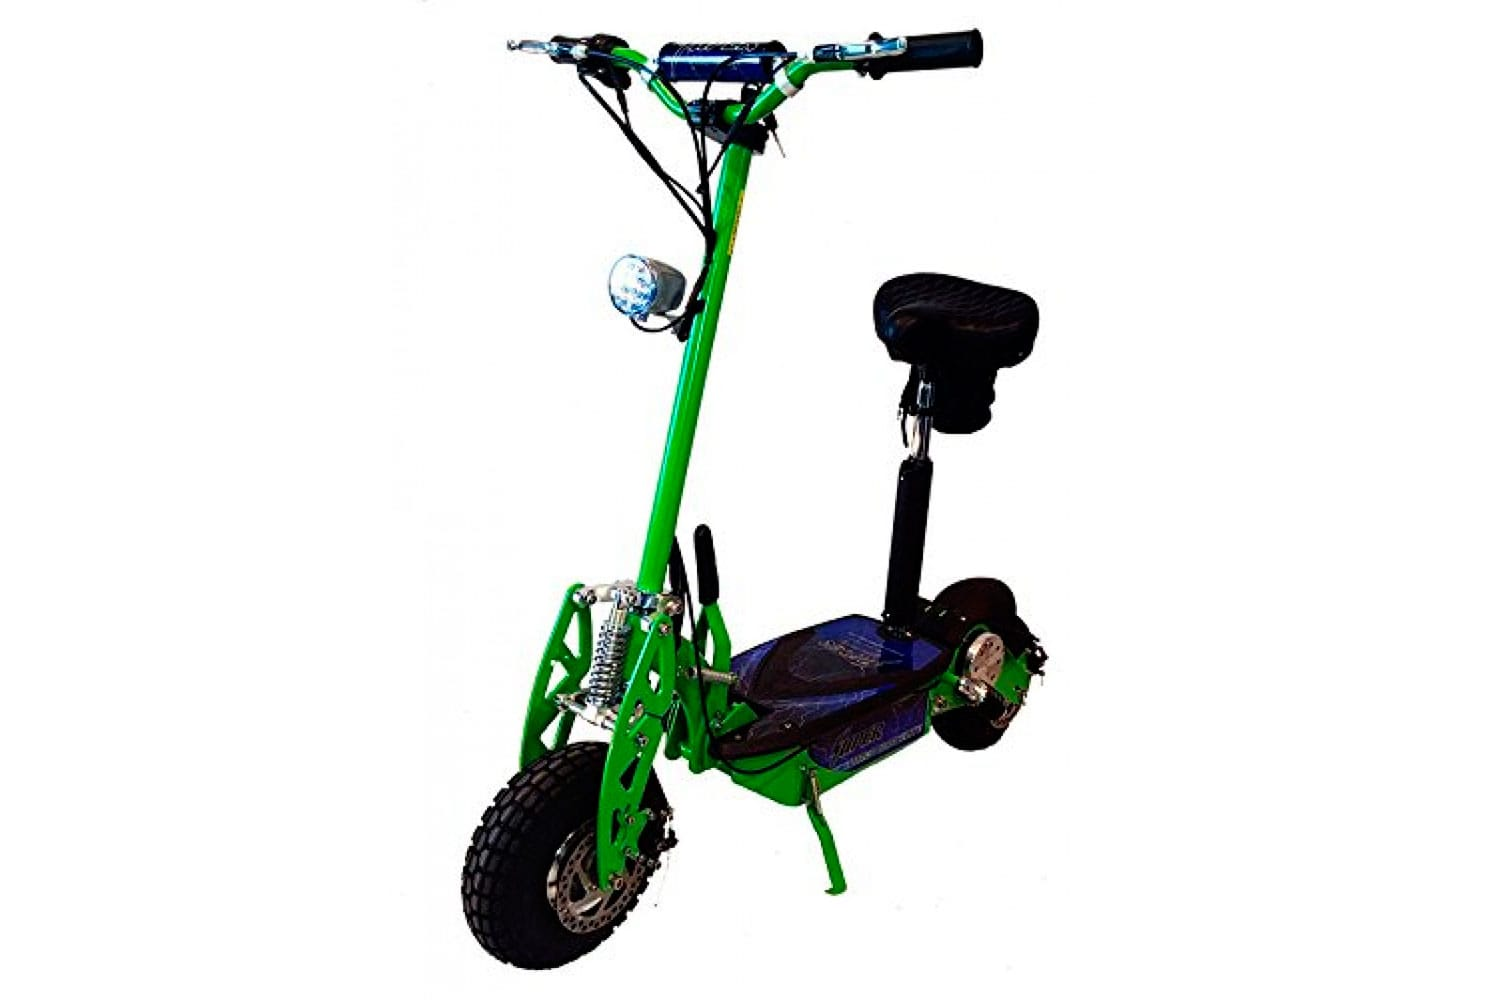 Super Turbo 1000 Elite review